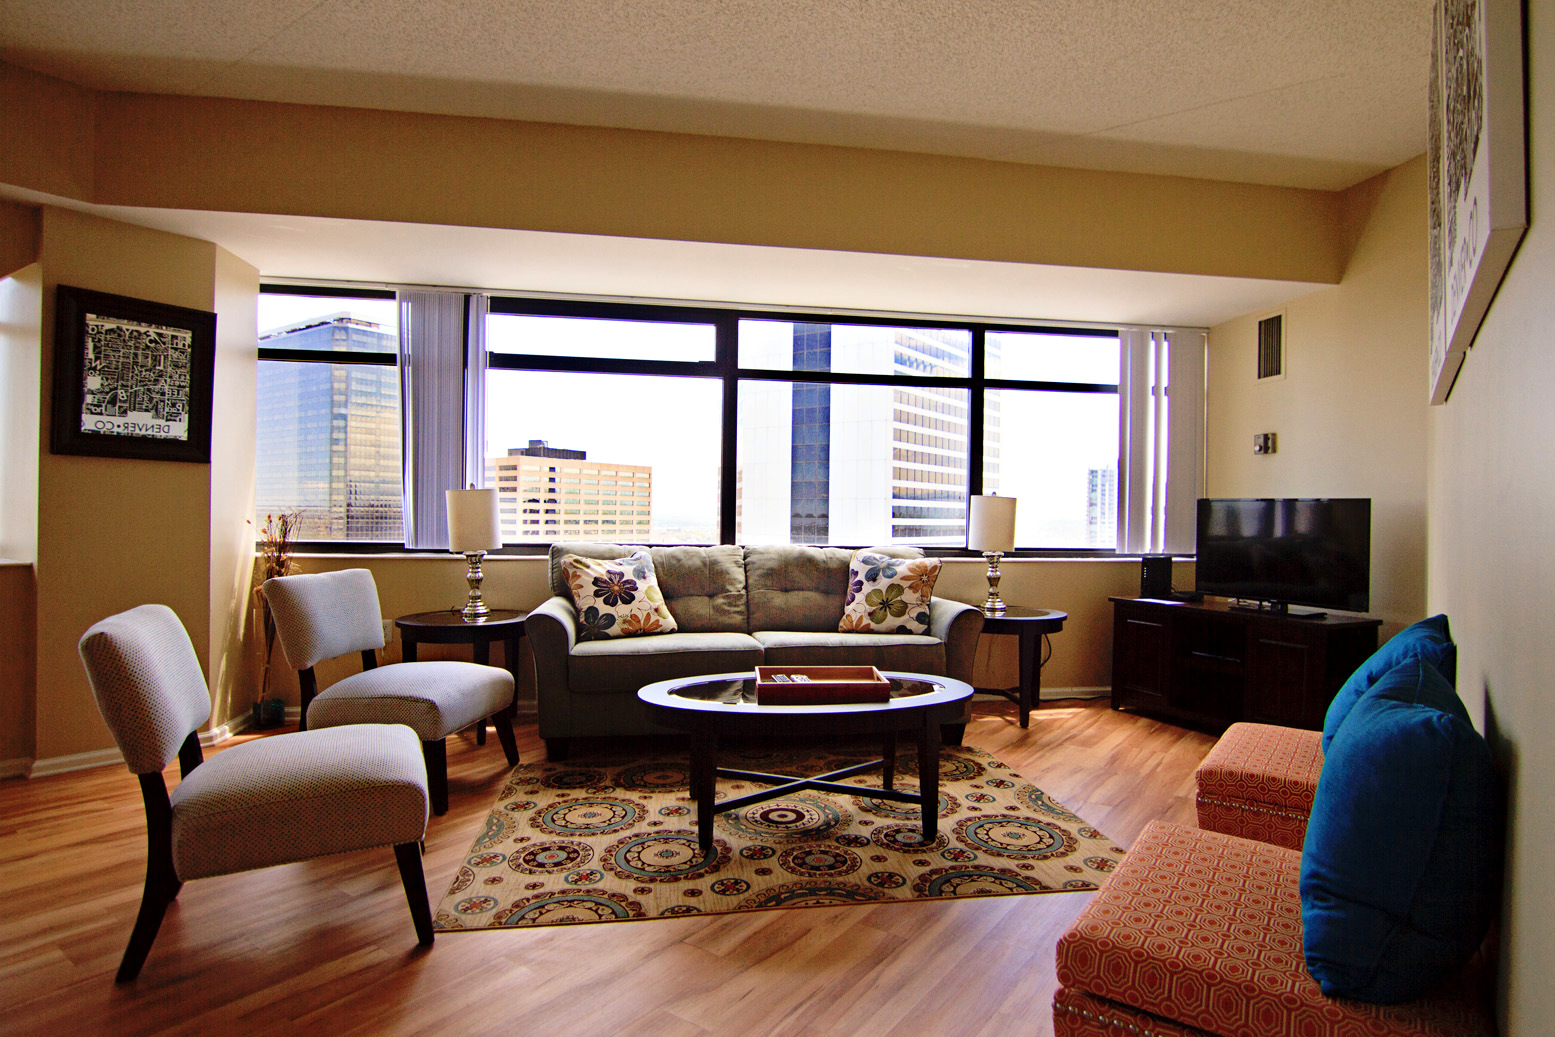 Denver vacation rentals at denver place by stay alfred in for Cabins in denver colorado for vacation